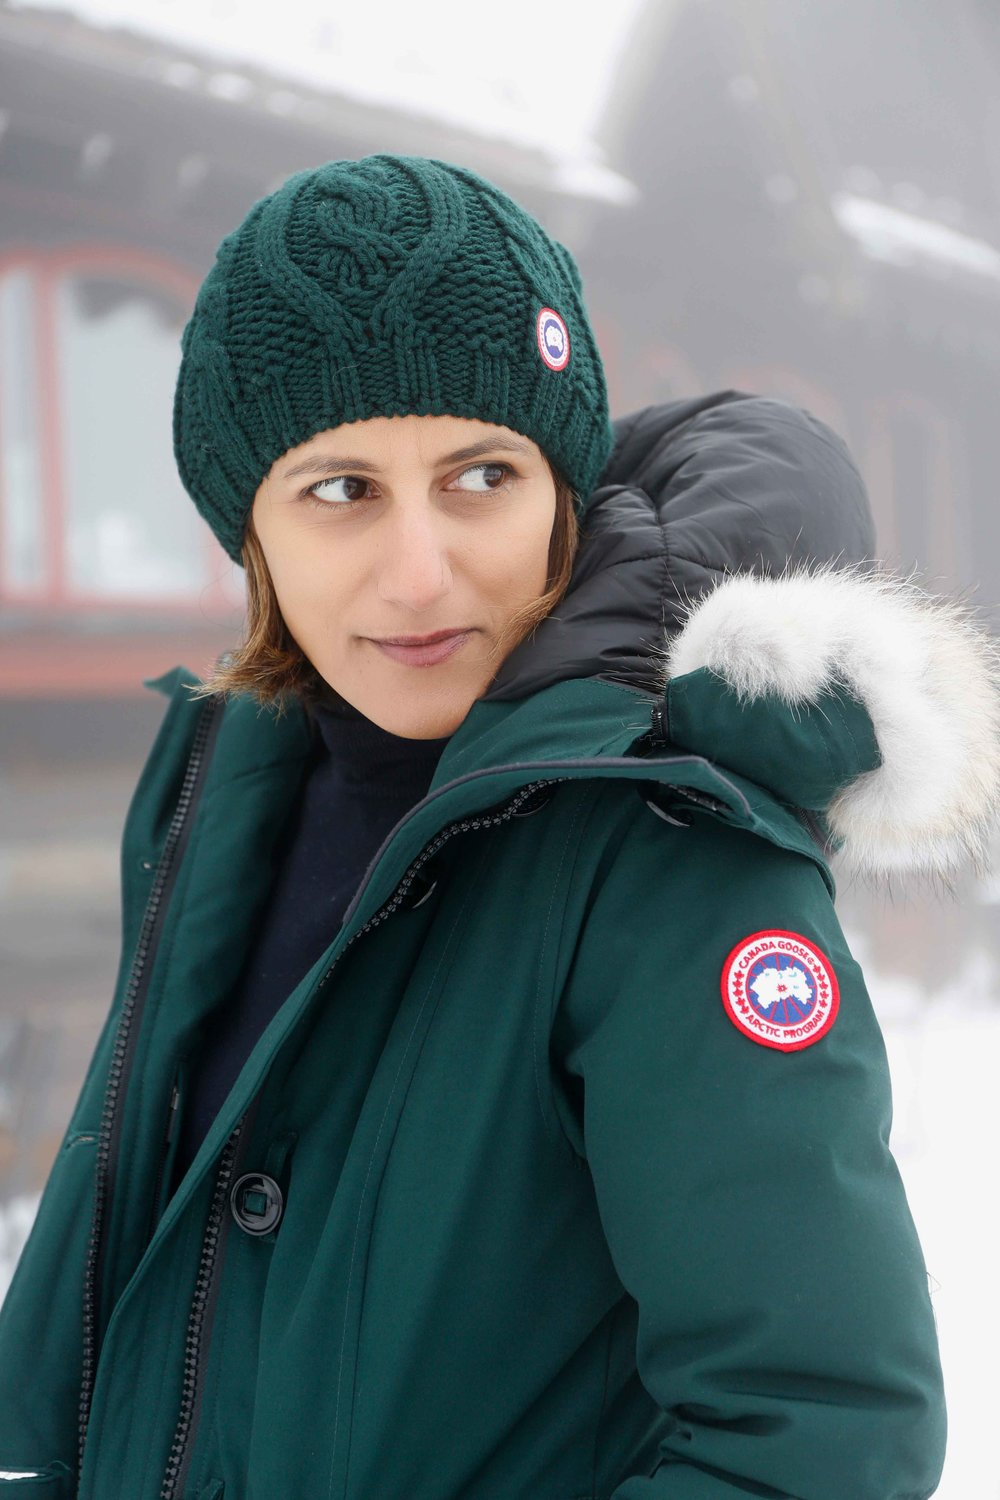 Canada goose Rossclair parka, Frognerseteren, Oslo, Norway. Photo: Oslo Photo Tour. Image©thingstodot.com